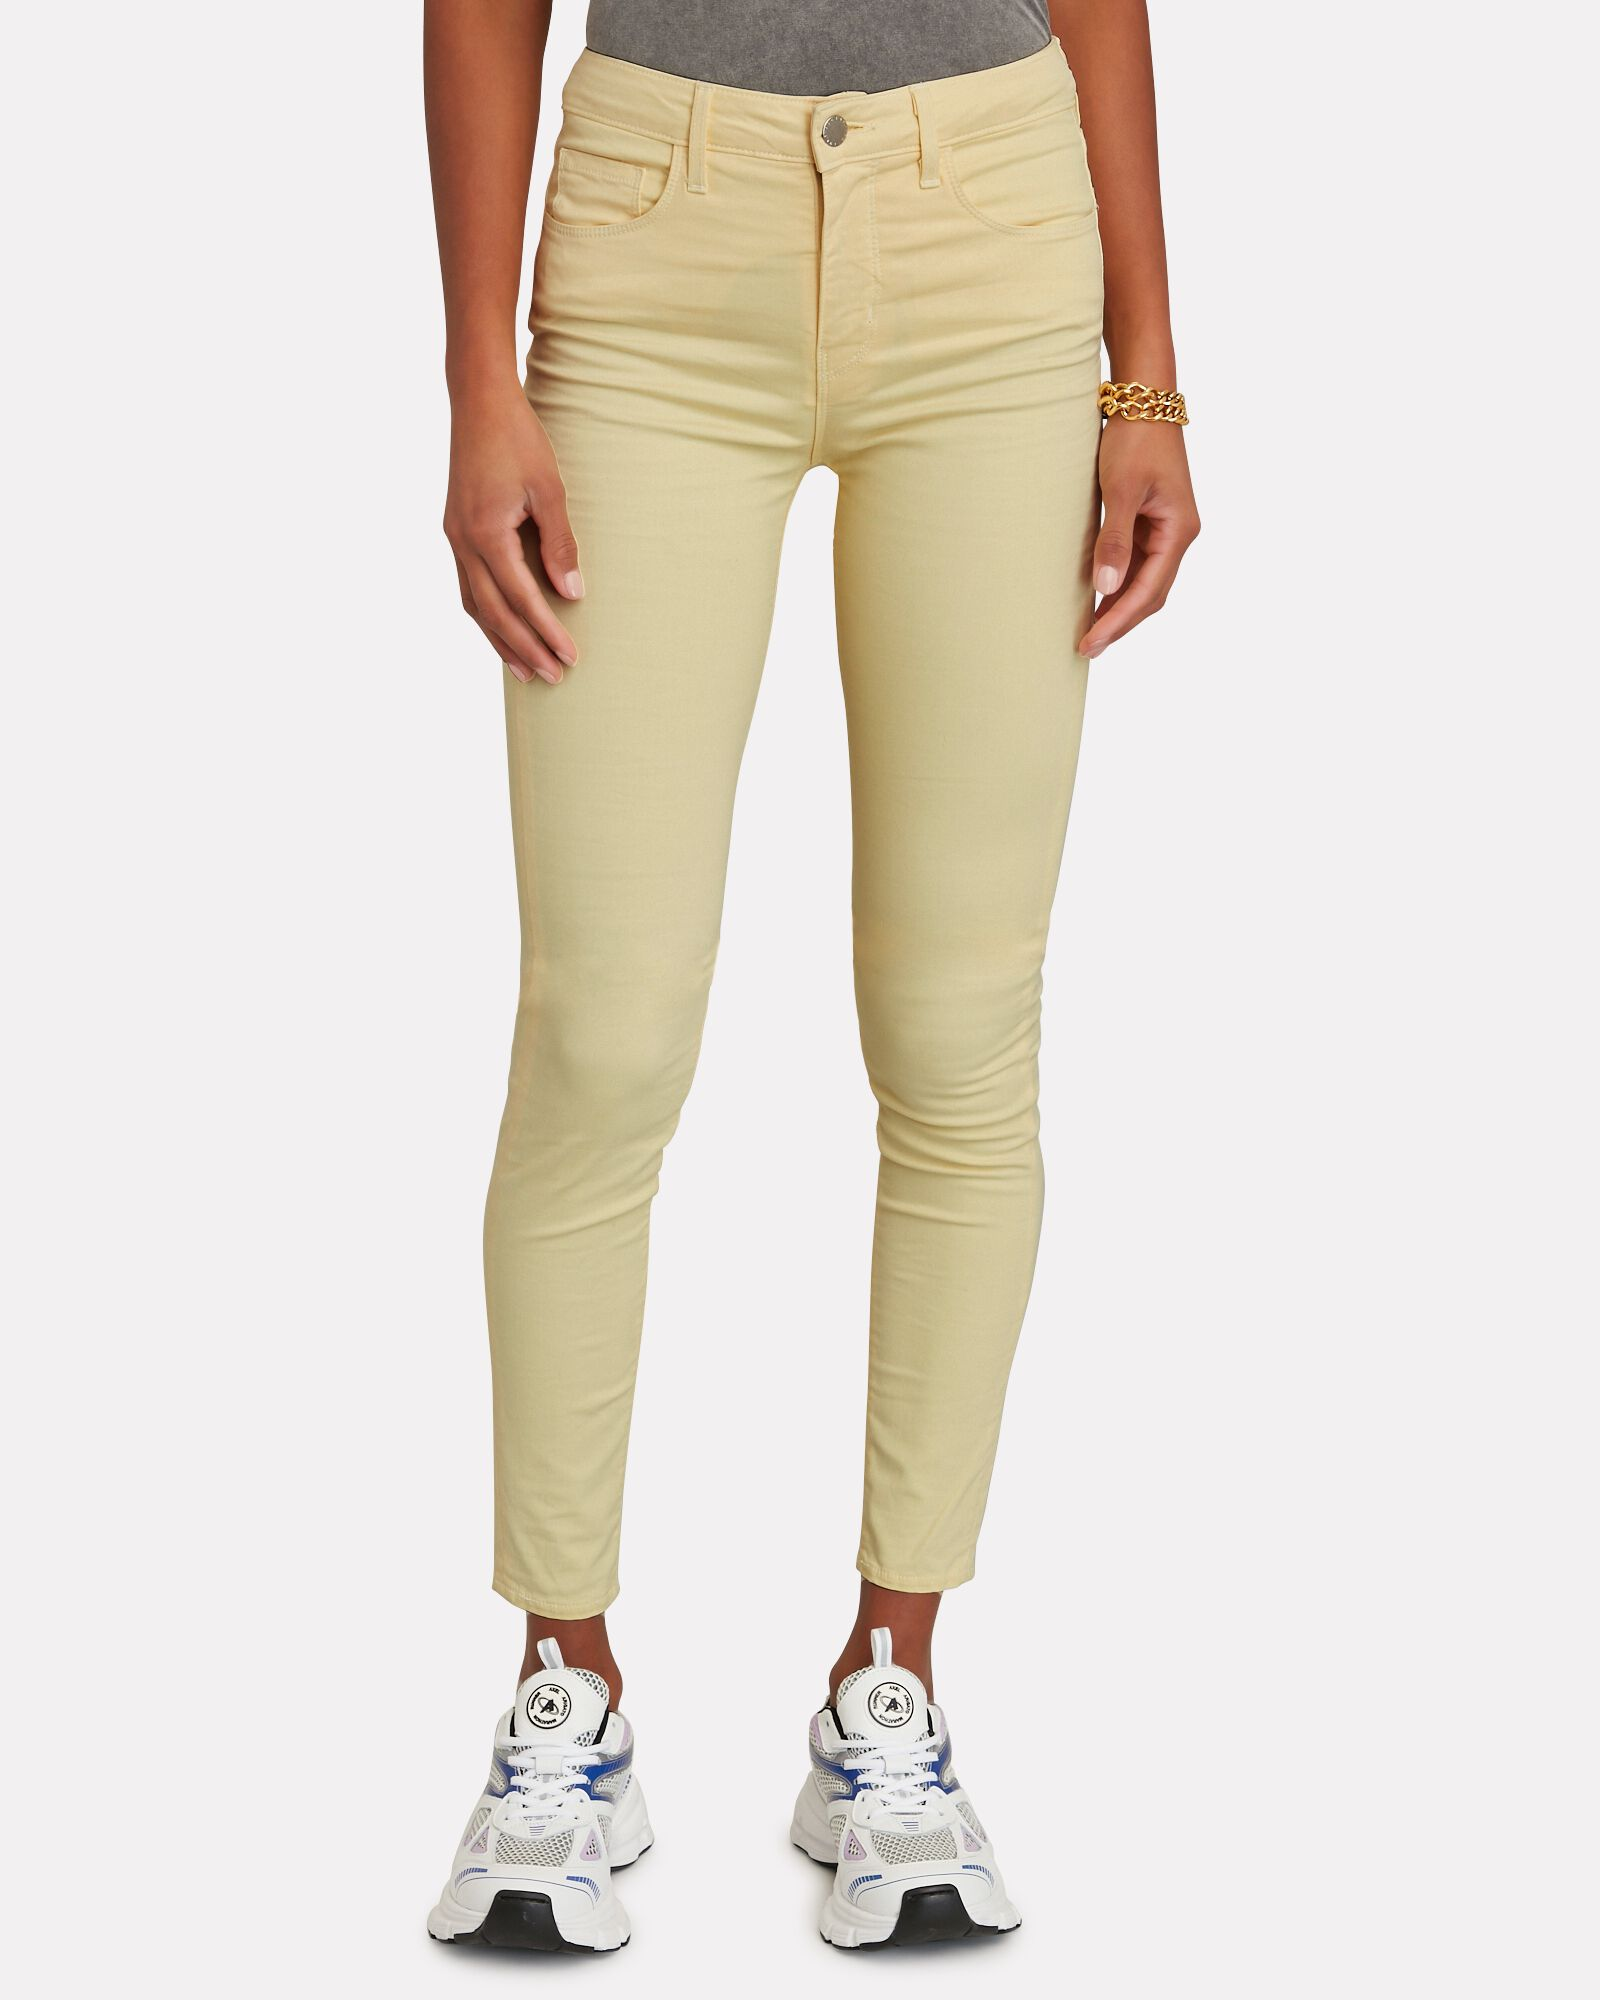 Margot High-Rise Skinny Jeans, BANANA, hi-res